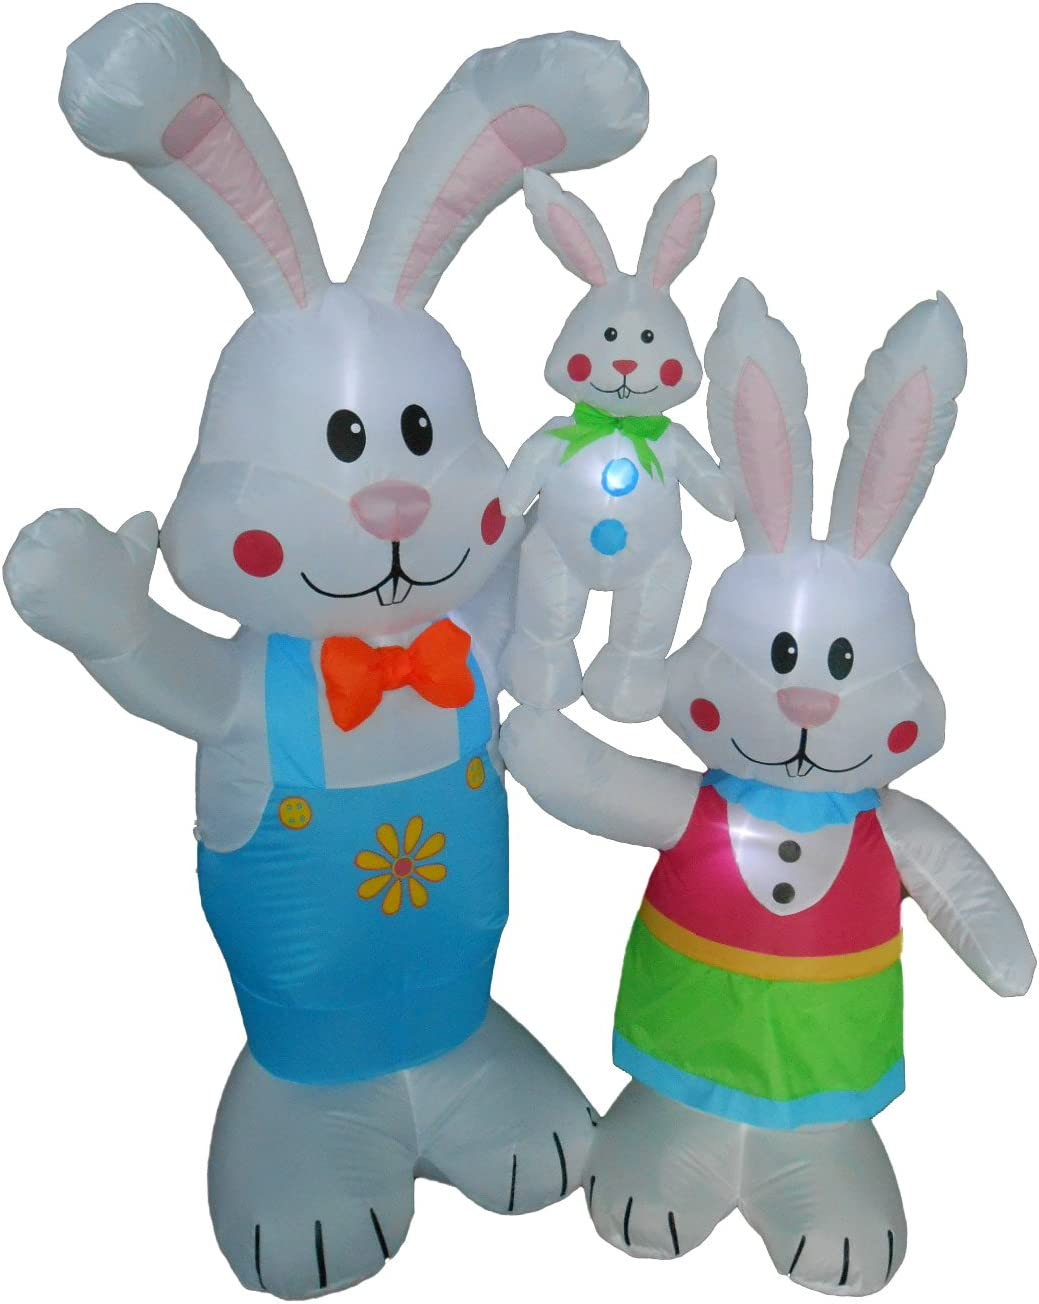 BZB Goods 5 Foot Tall Easter Inflatable Party Bunny Bunnies Family - Yard Blow Up Decoration